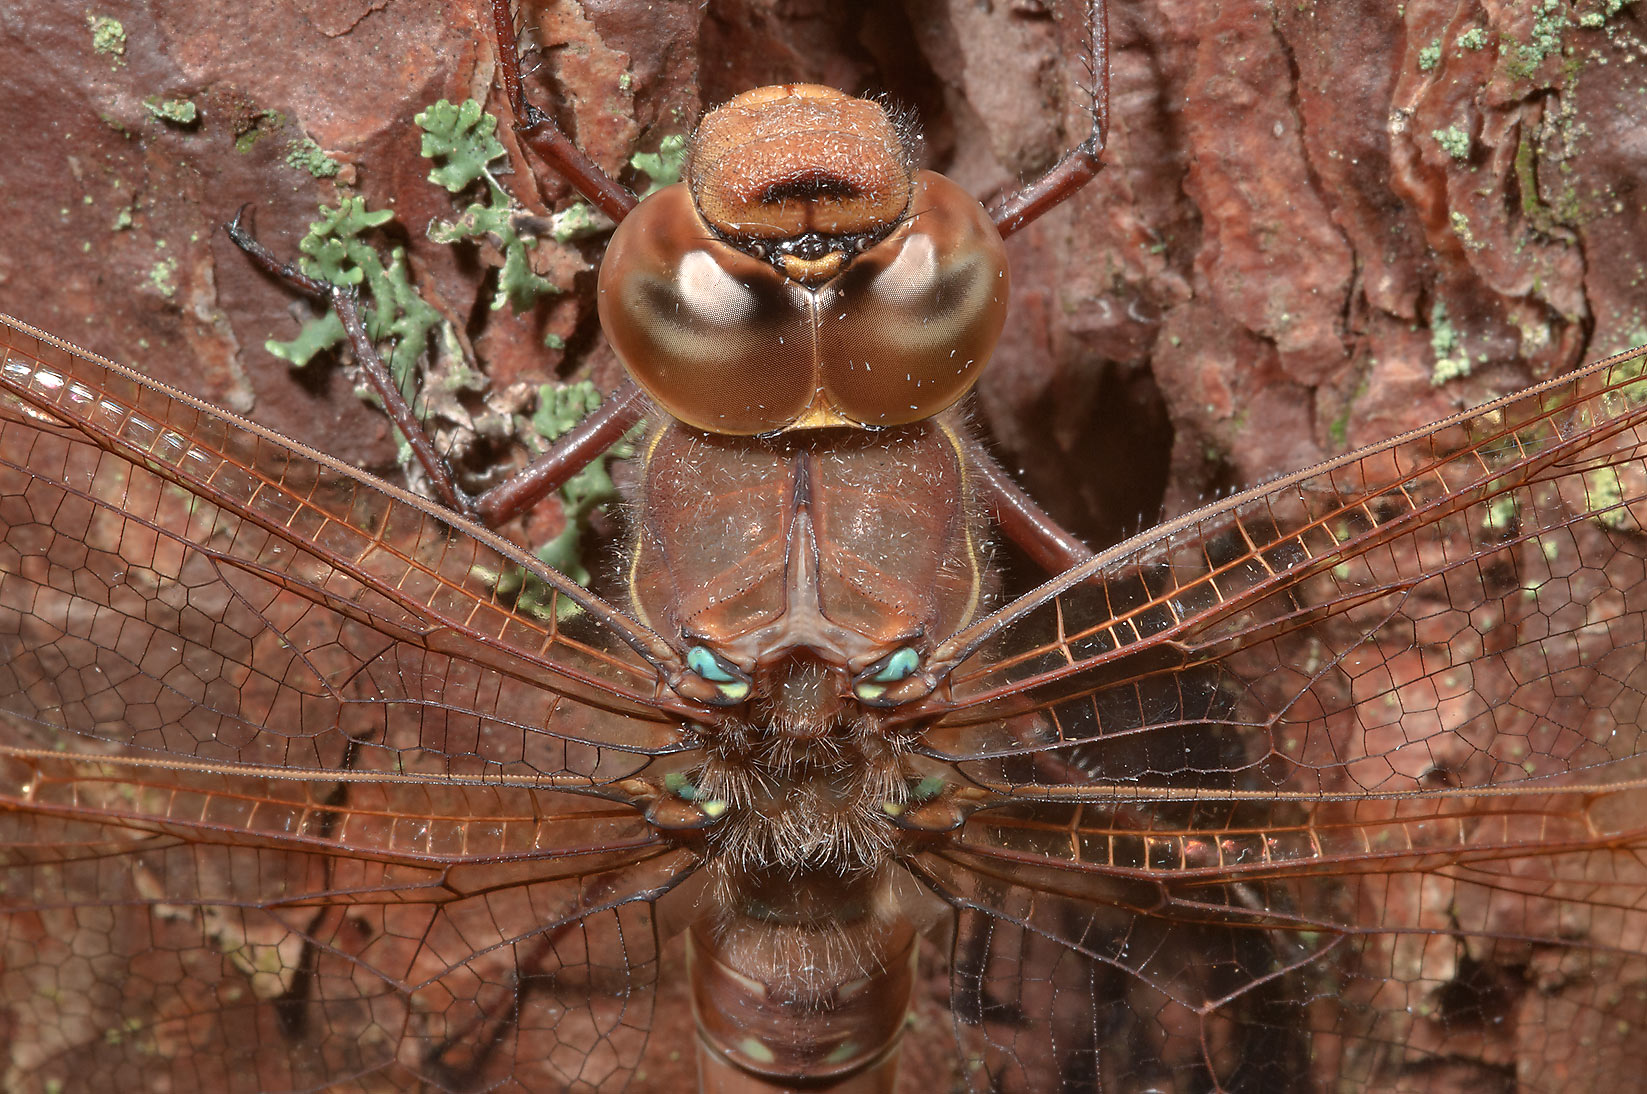 Dragonfly sleeping on a pine trunk in a forest...miles north from St.Petersburg. Russia